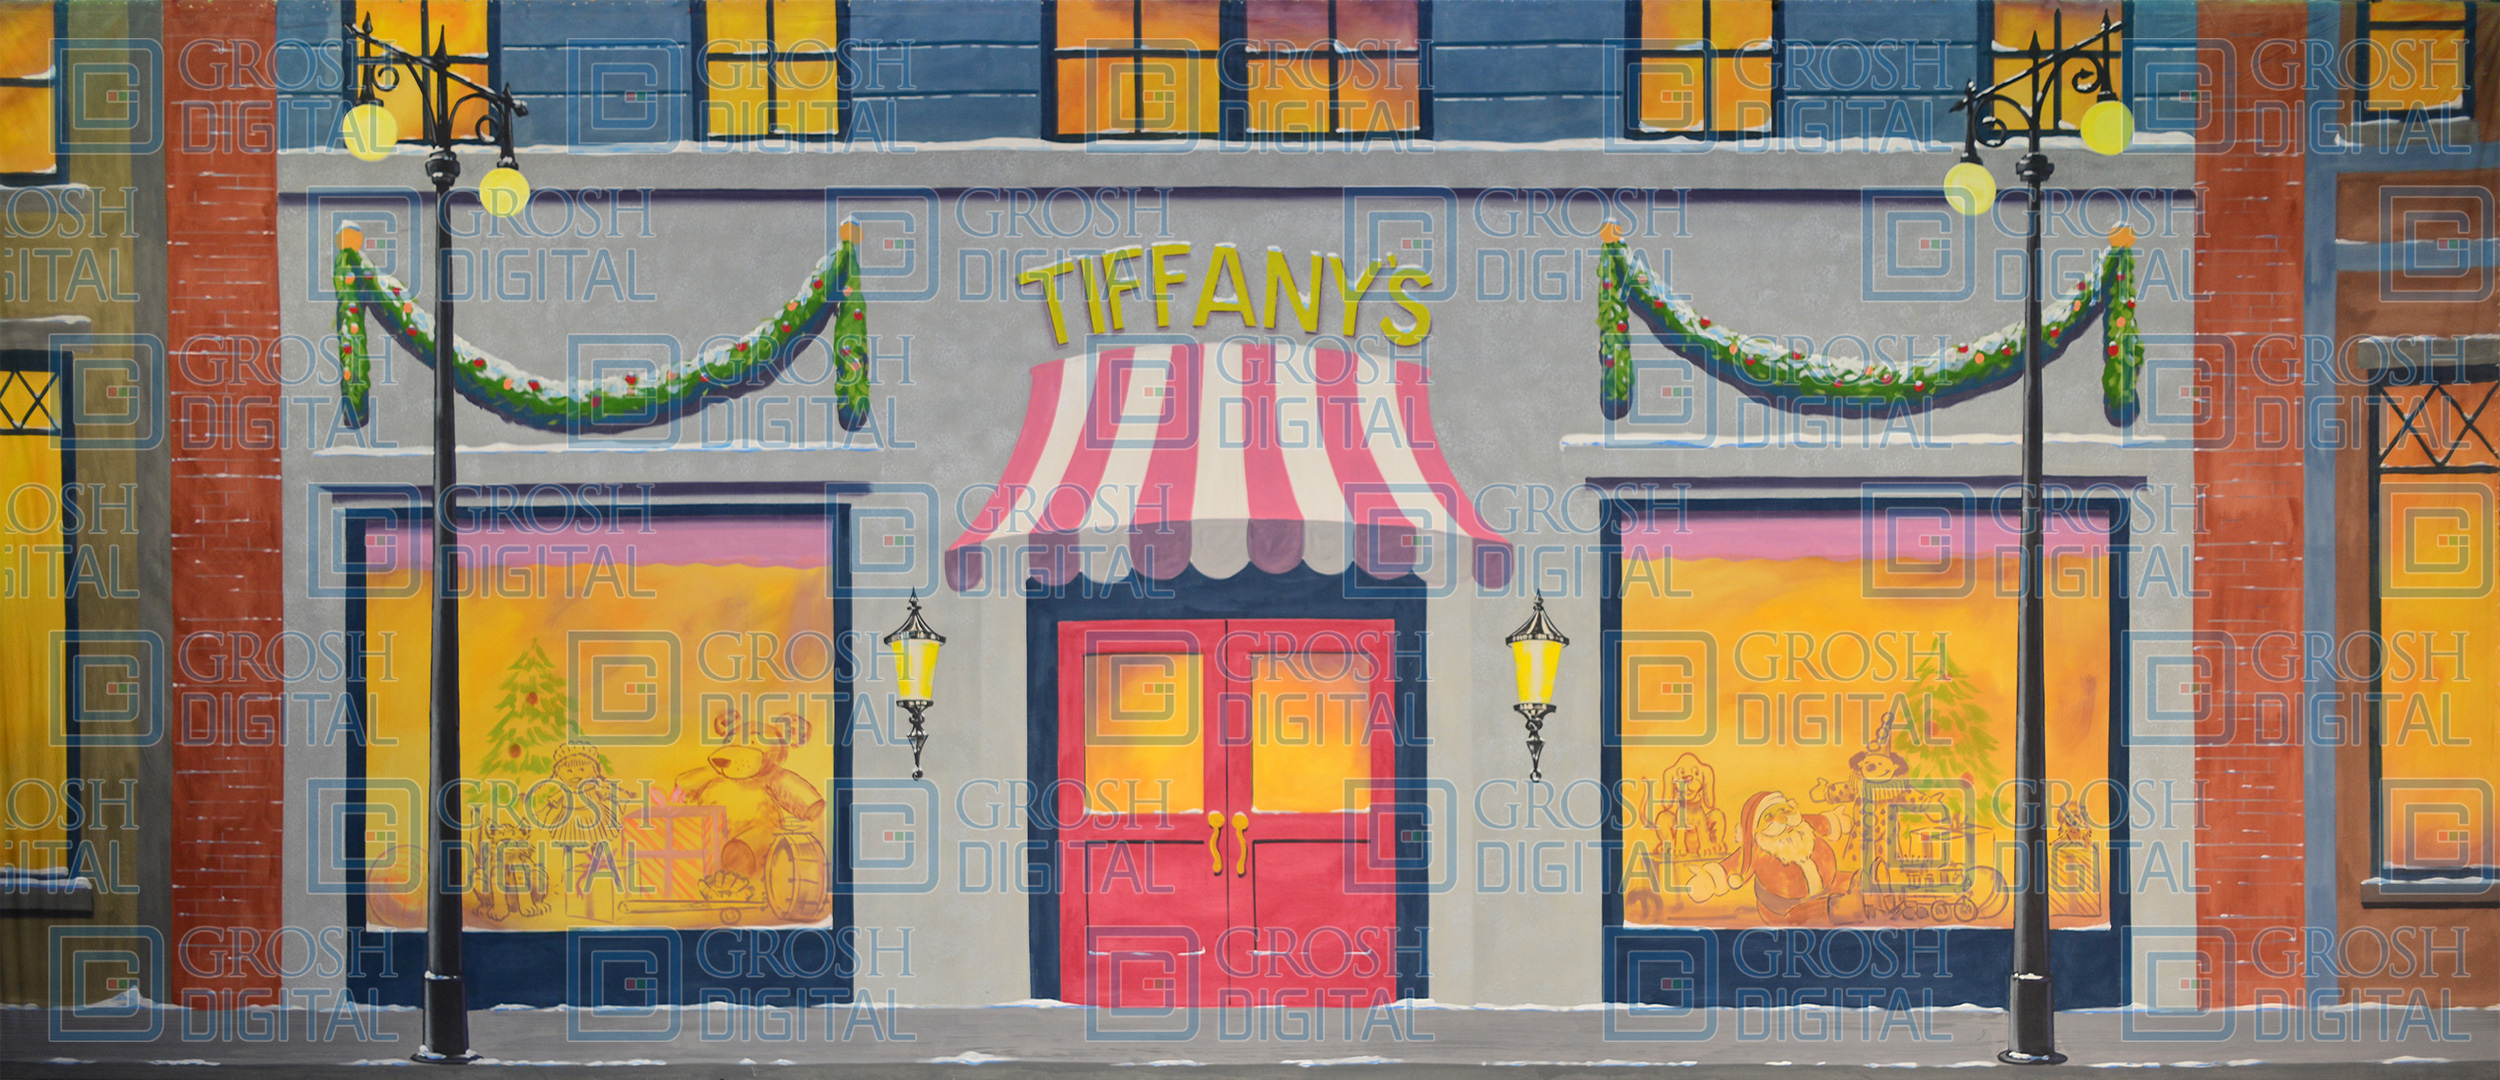 Christmas Storefront Projected Backdrop for A Christmas Carol, Annie, Elf the Musical, Exteriors, Holiday, Streets